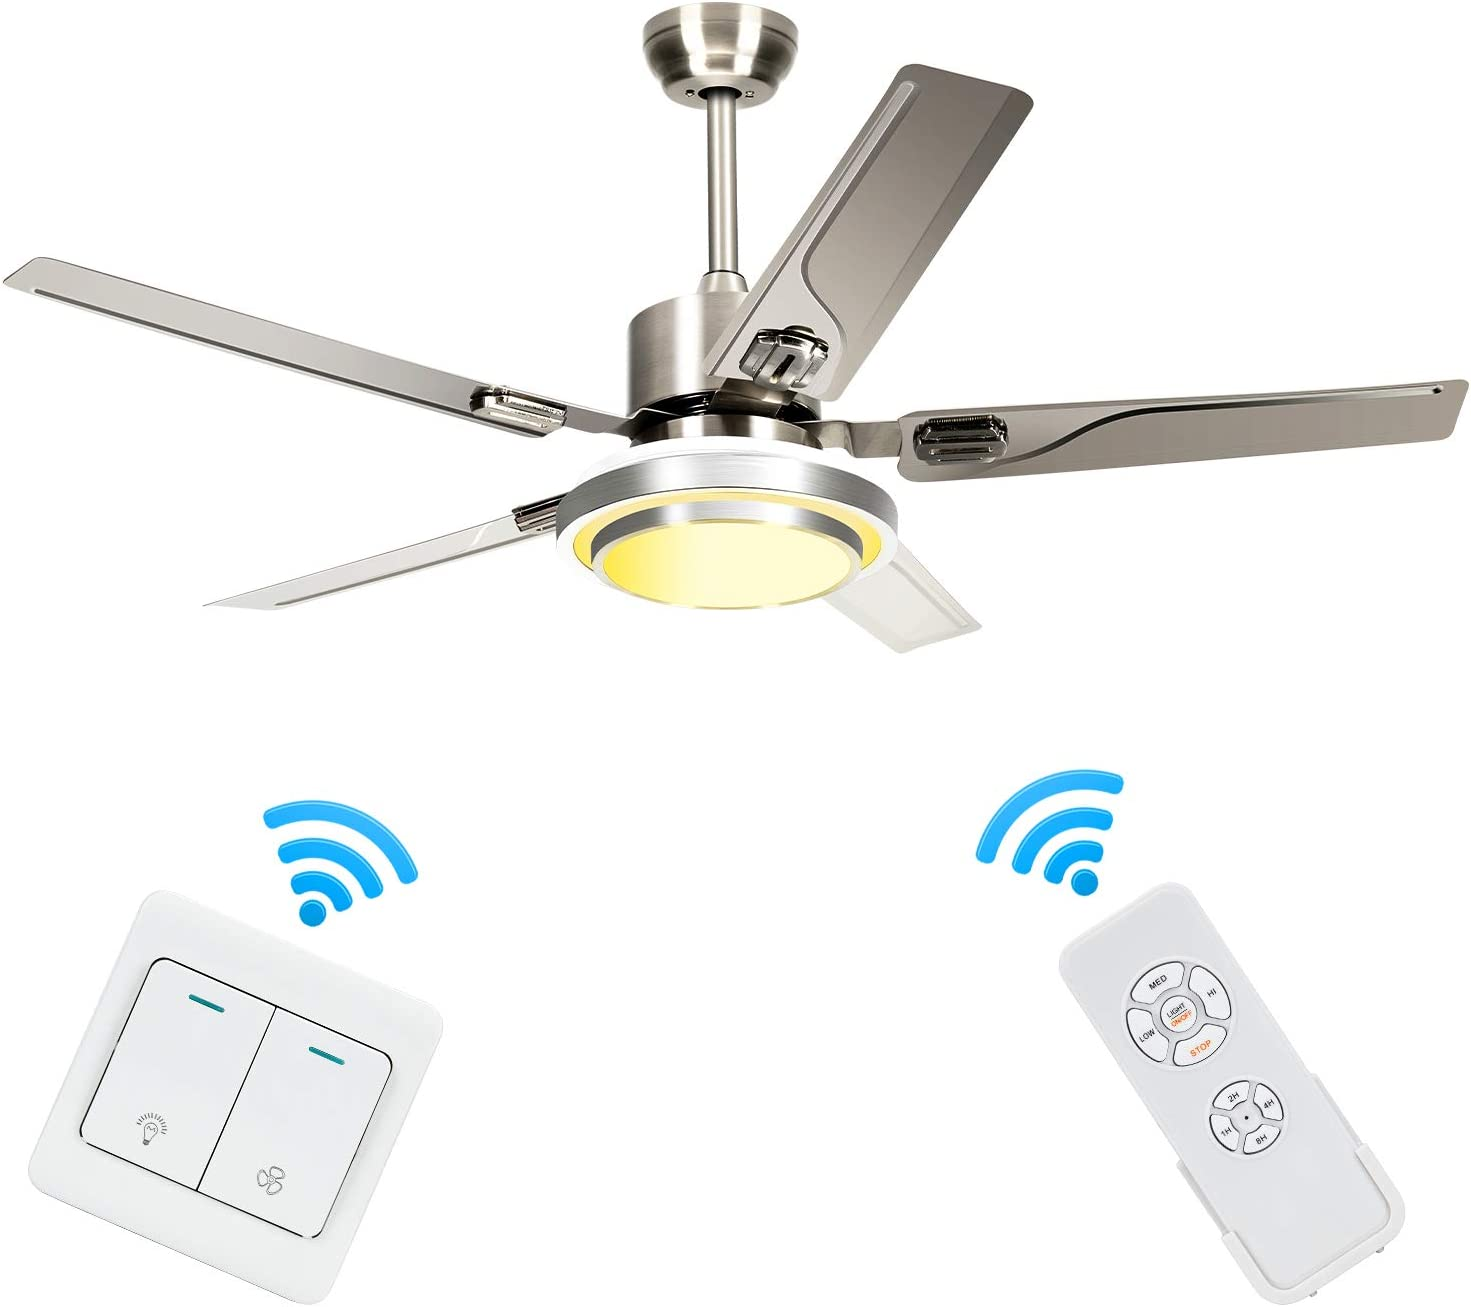 Modern Ceiling Fans with Light, Reversible, 5 Stainless Steel Blades, Three Speeds 3 Light Changes, Indoor, Silent, Energy Saving, Home Decor, 48 Inch